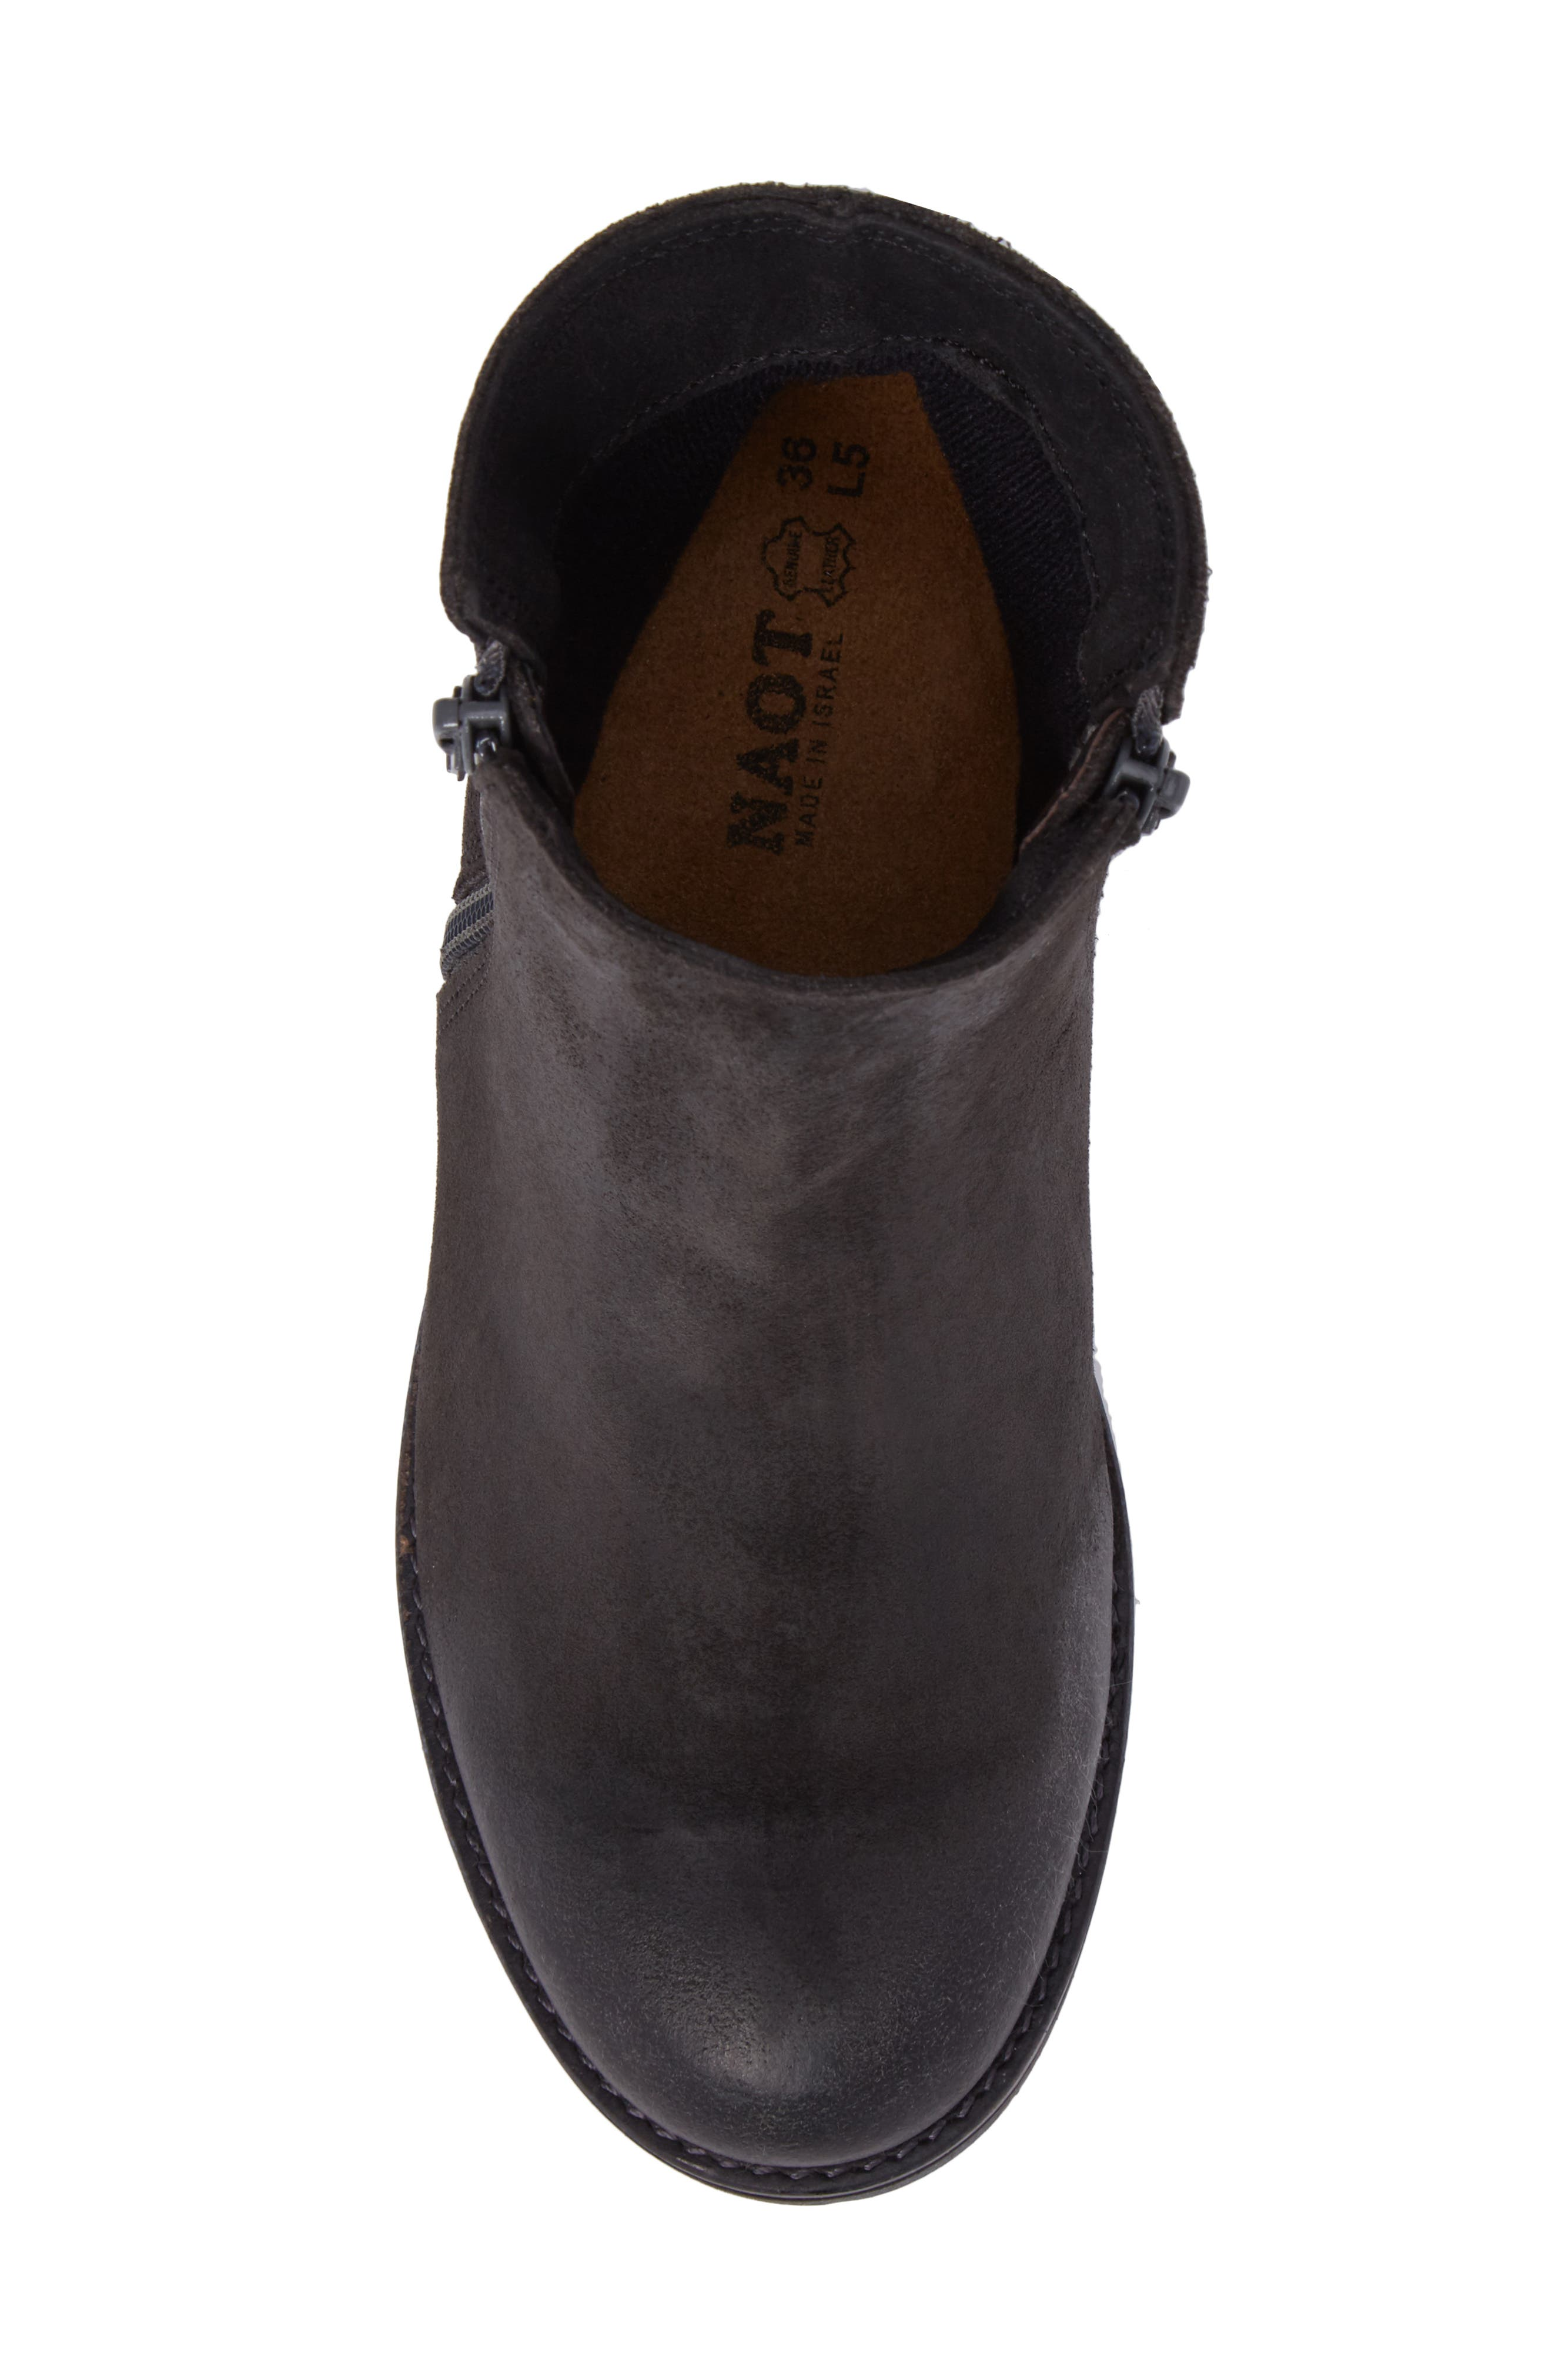 Wander Boot,                             Alternate thumbnail 5, color,                             OILY MIDNIGHT SUEDE